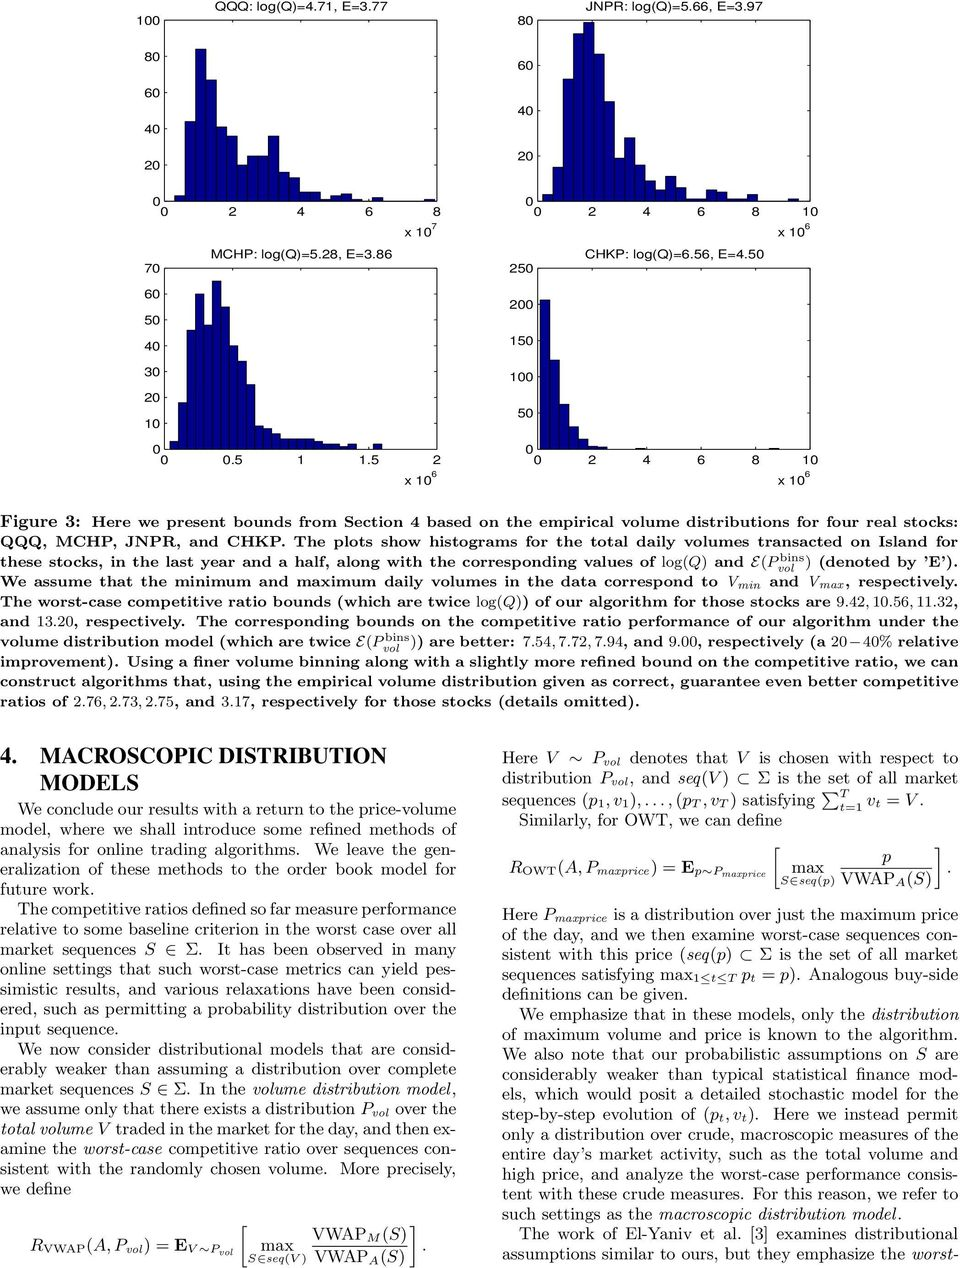 50 250 200 150 100 50 0 0 2 4 6 8 10 x 10 6 Figure 3: Here we present bounds from Section 4 based on the empirical ume distributions for four real stocks: QQQ, MCHP, JNPR, and CHKP.